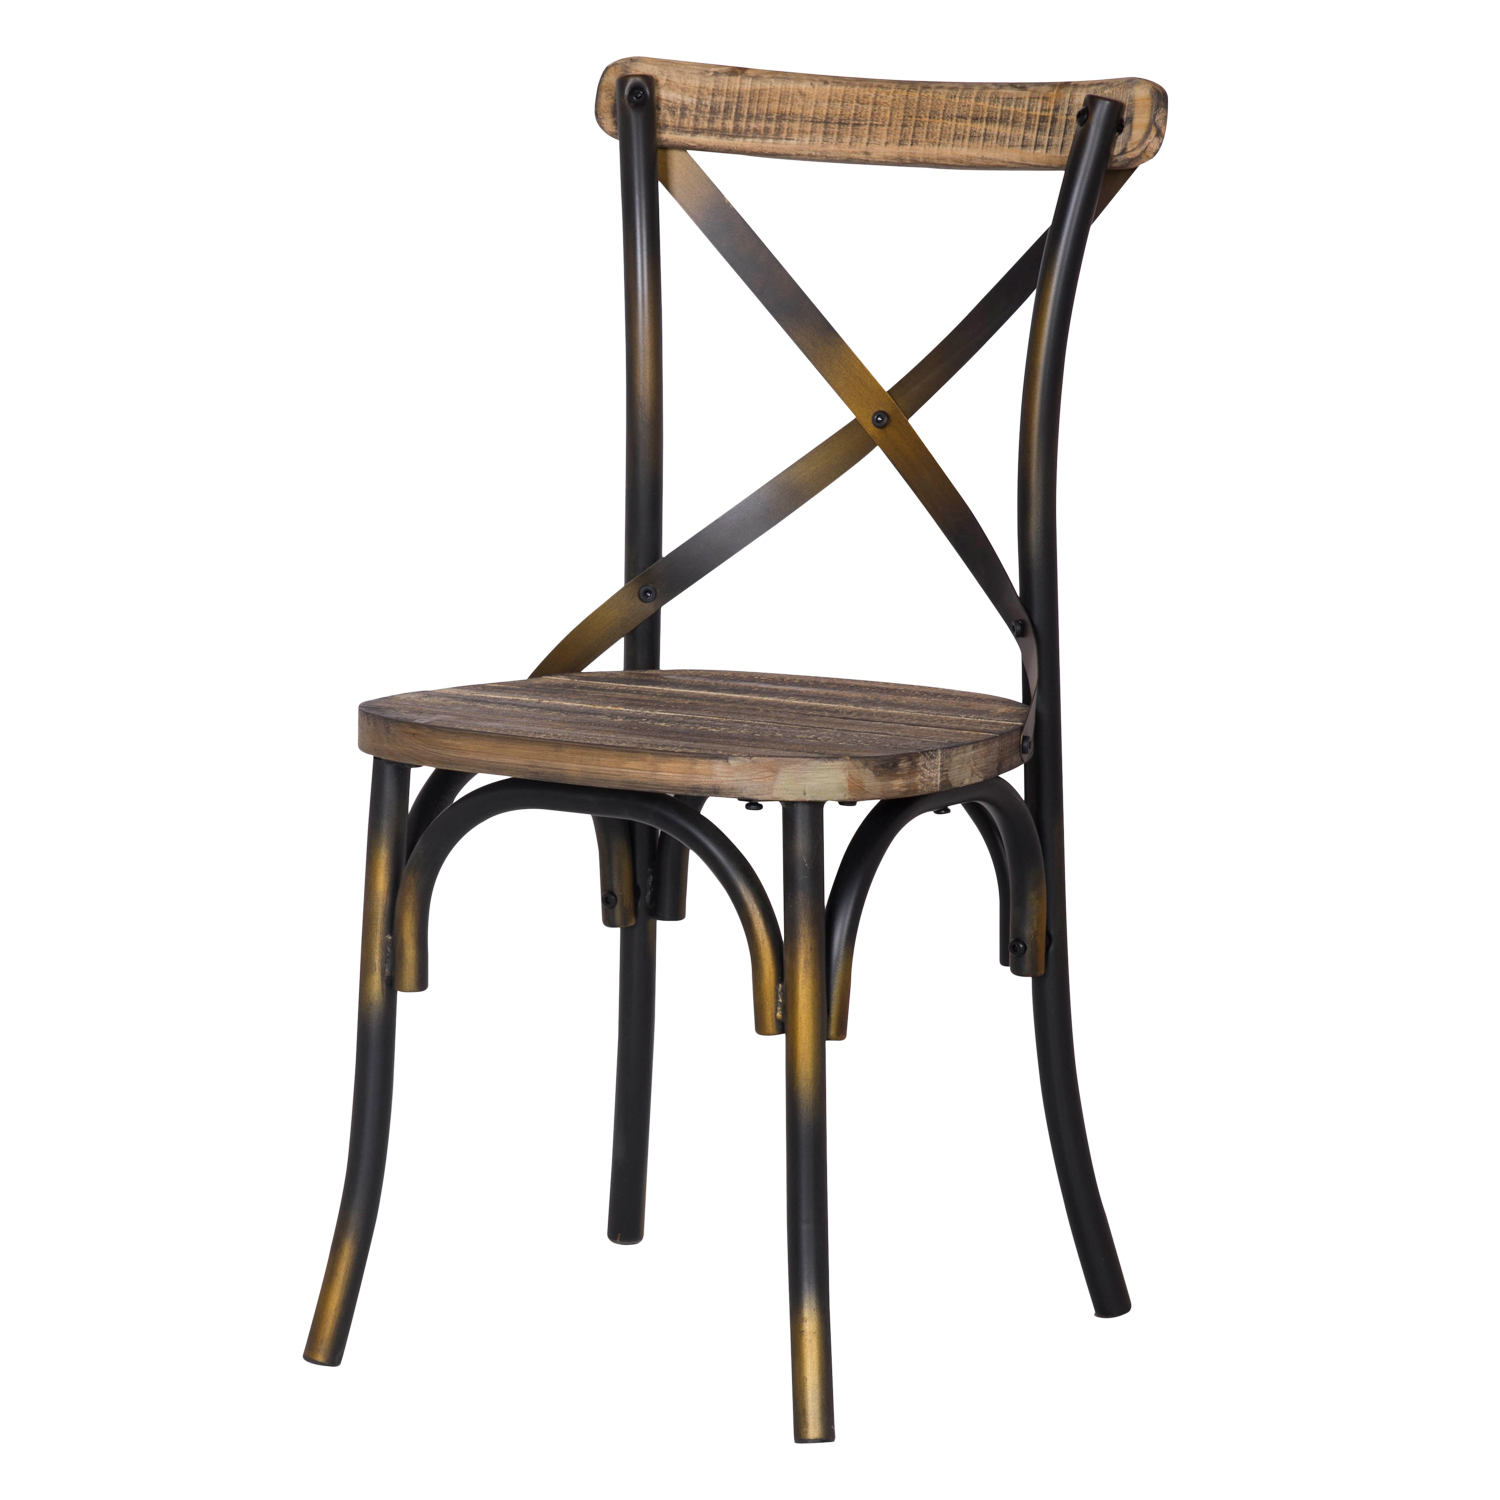 Copper Dining Chairs Decenthome Rustic Antique Copper Metal Dining Chairs Ch0282 3